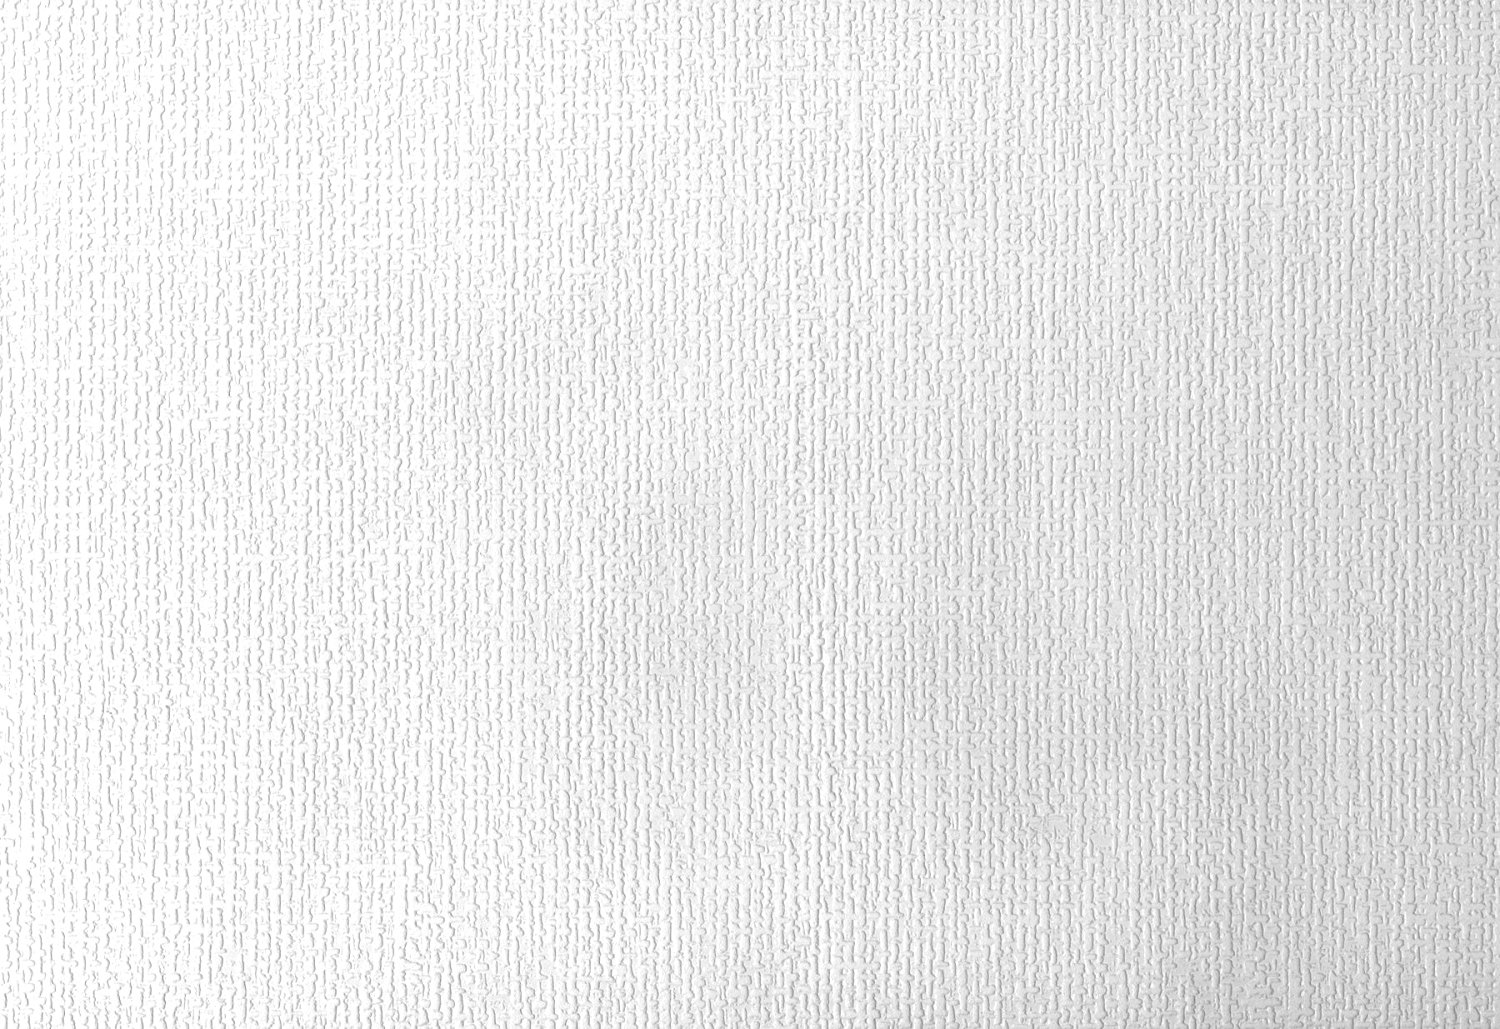 Plain White Textured Wallpaper Hd Is Cool Wallpapers